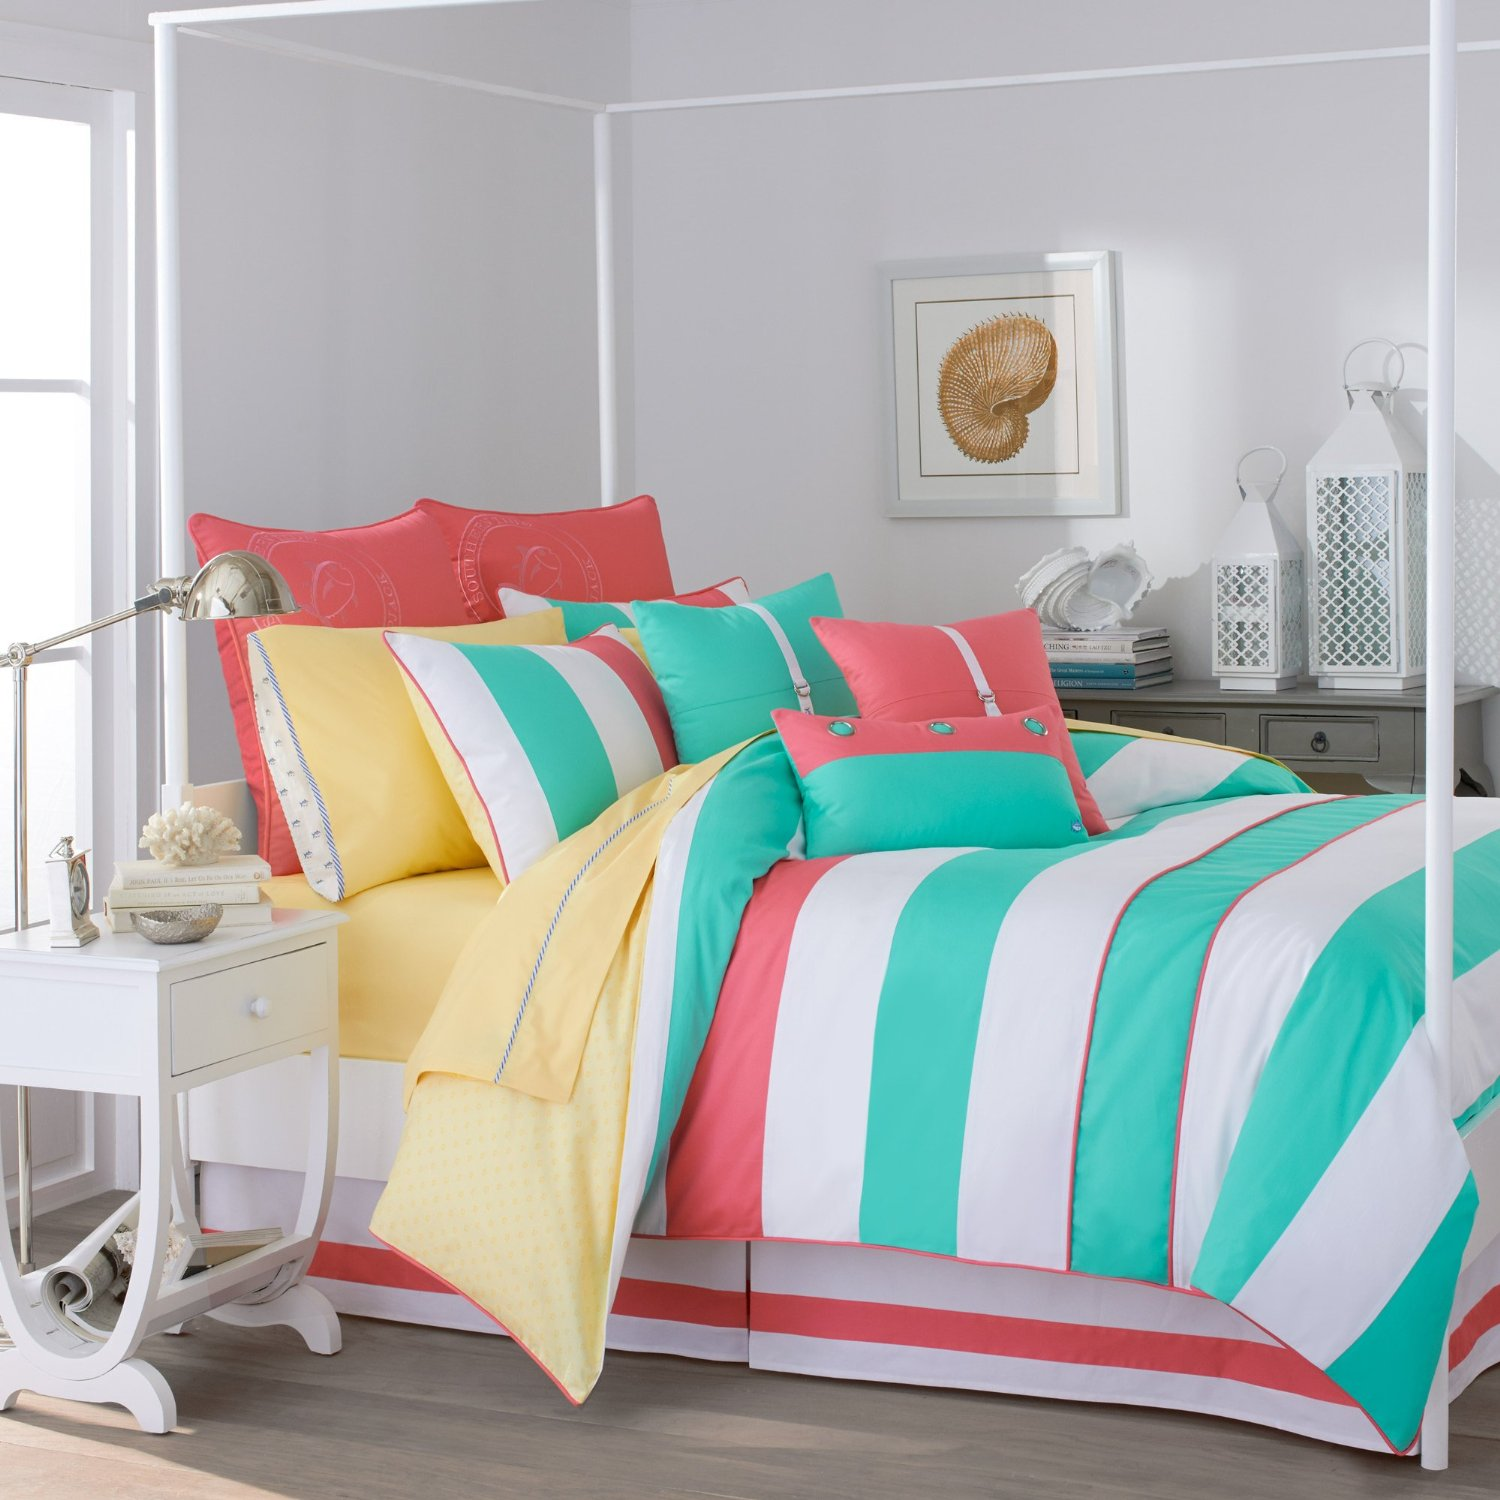 Bed sheets designs for girls - Colorful Stripe Bedding For Teen Girls Image 3 Of 10